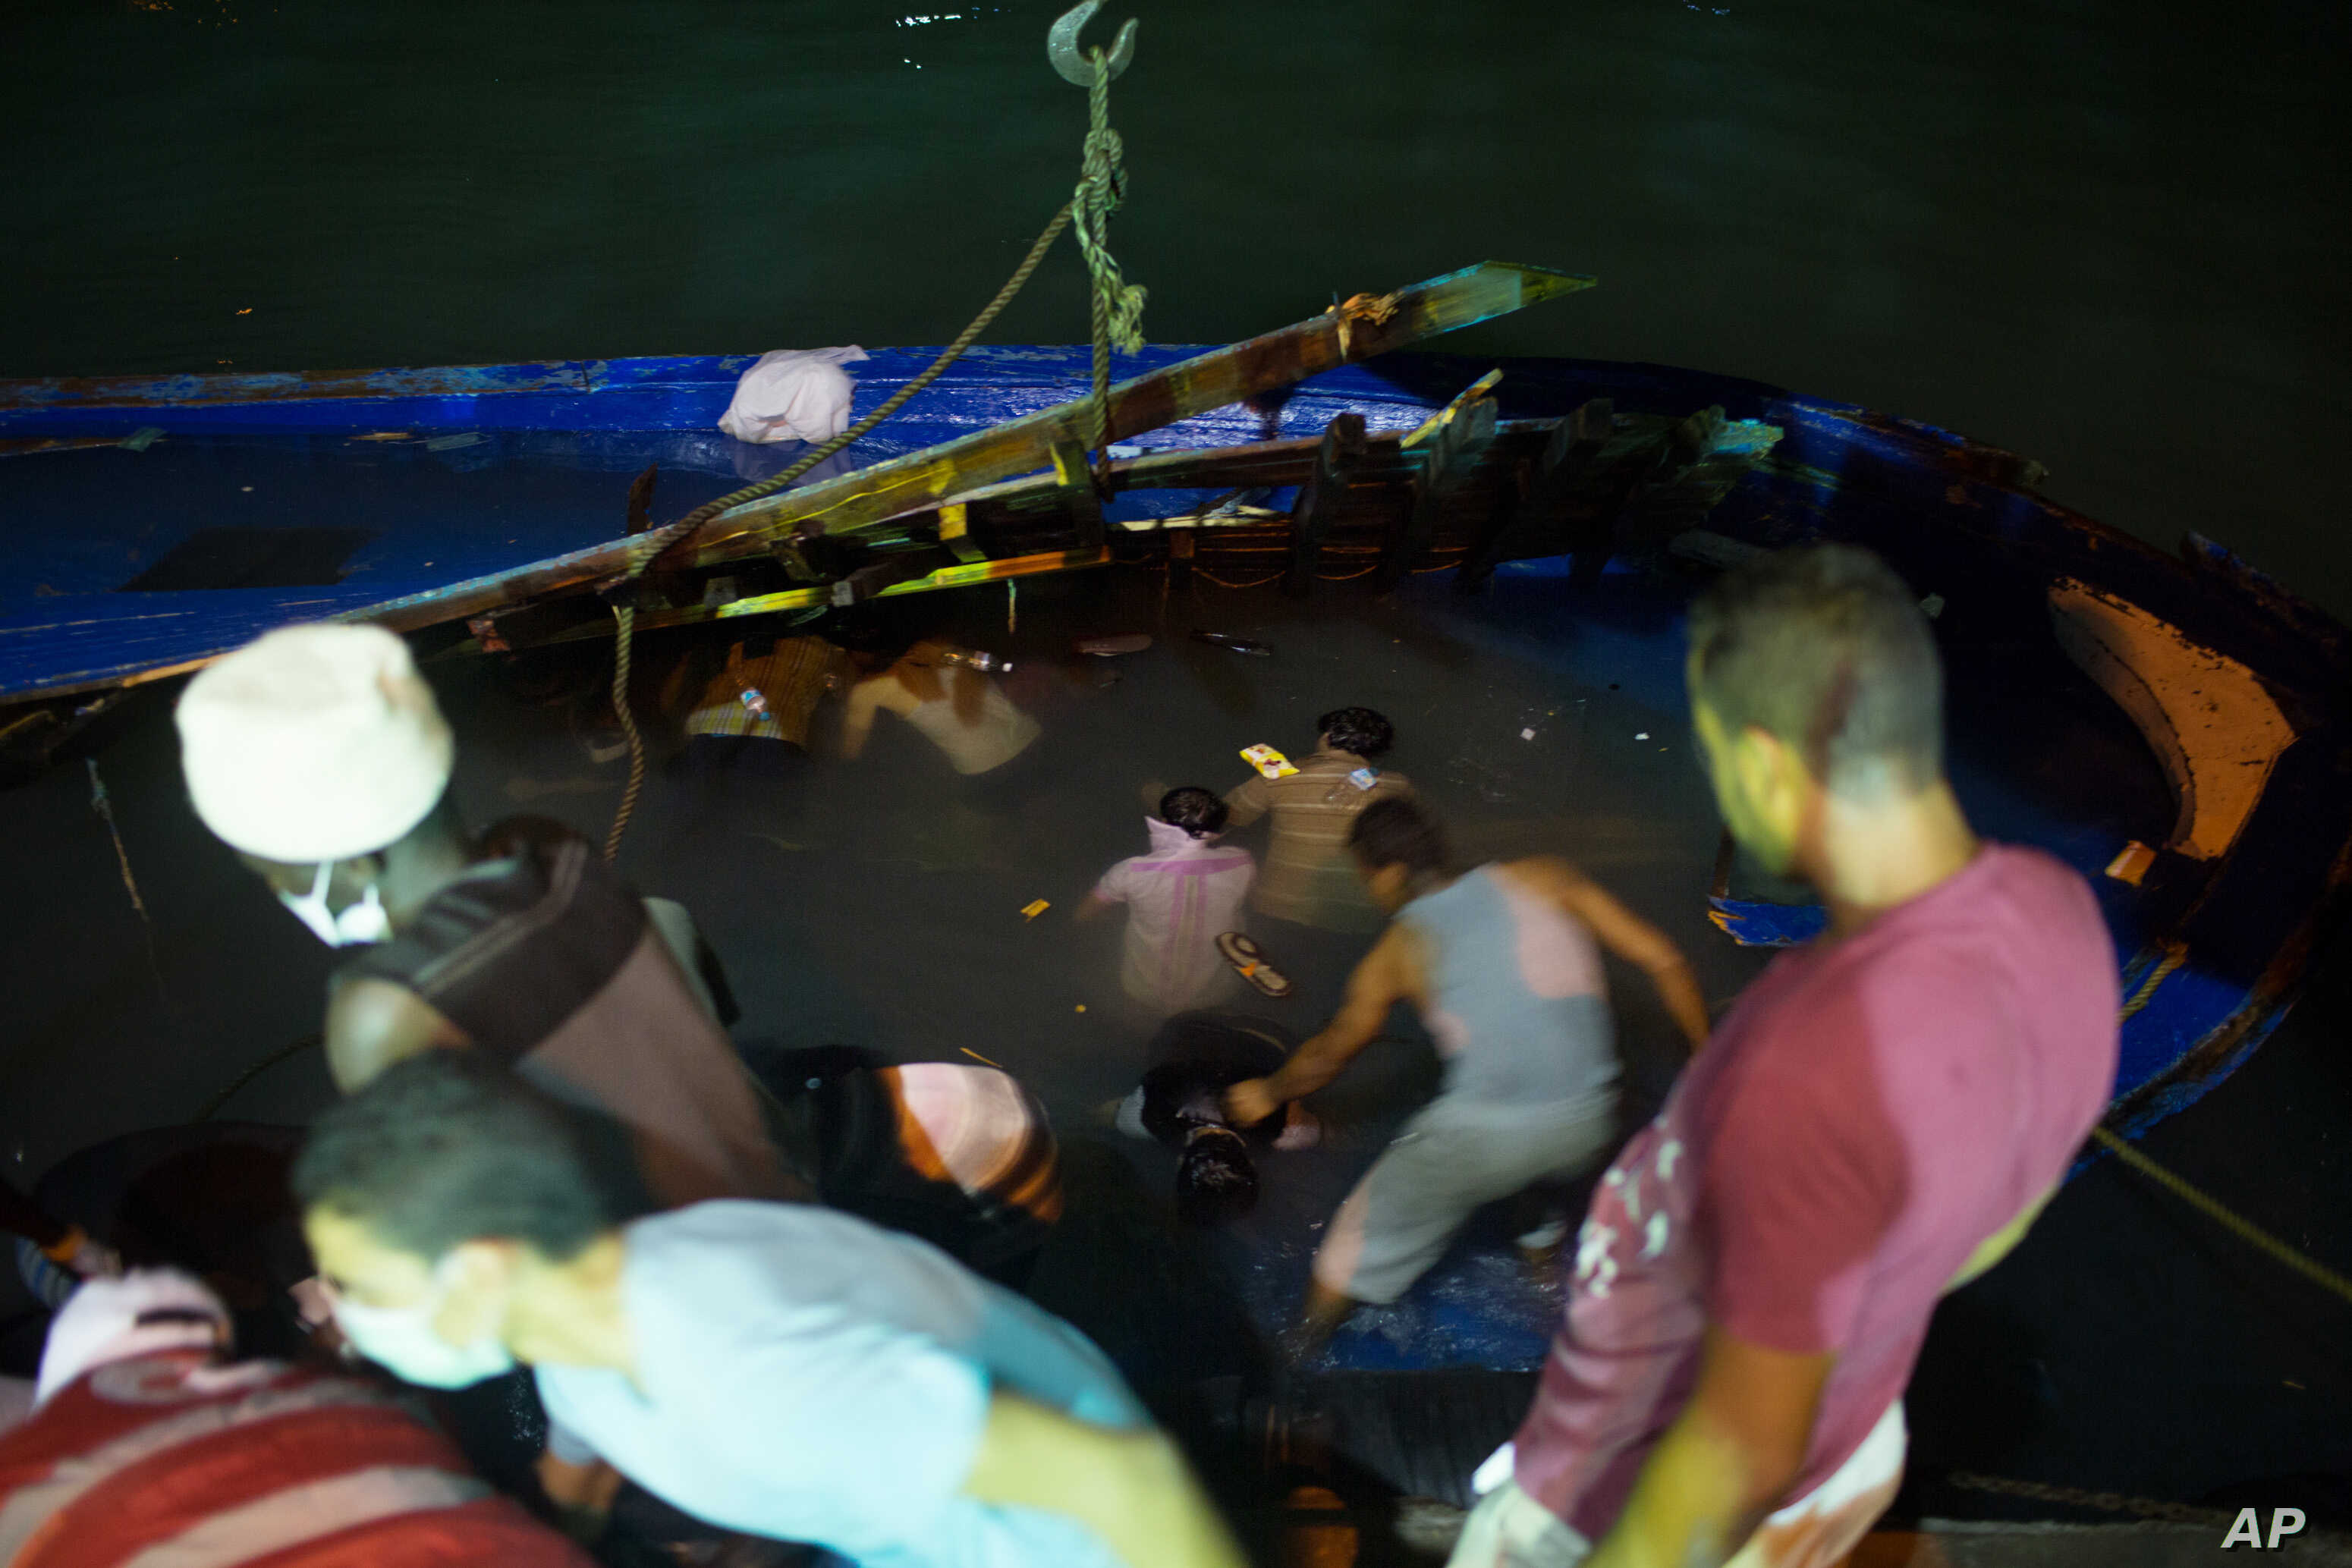 Rescuers work to help survivors and remove bodies of migrants trapped beneath the deck of a boat after it sank in the Mediterranean Sea off the coast of in Zuwara, Libya, Aug. 27, 2015.